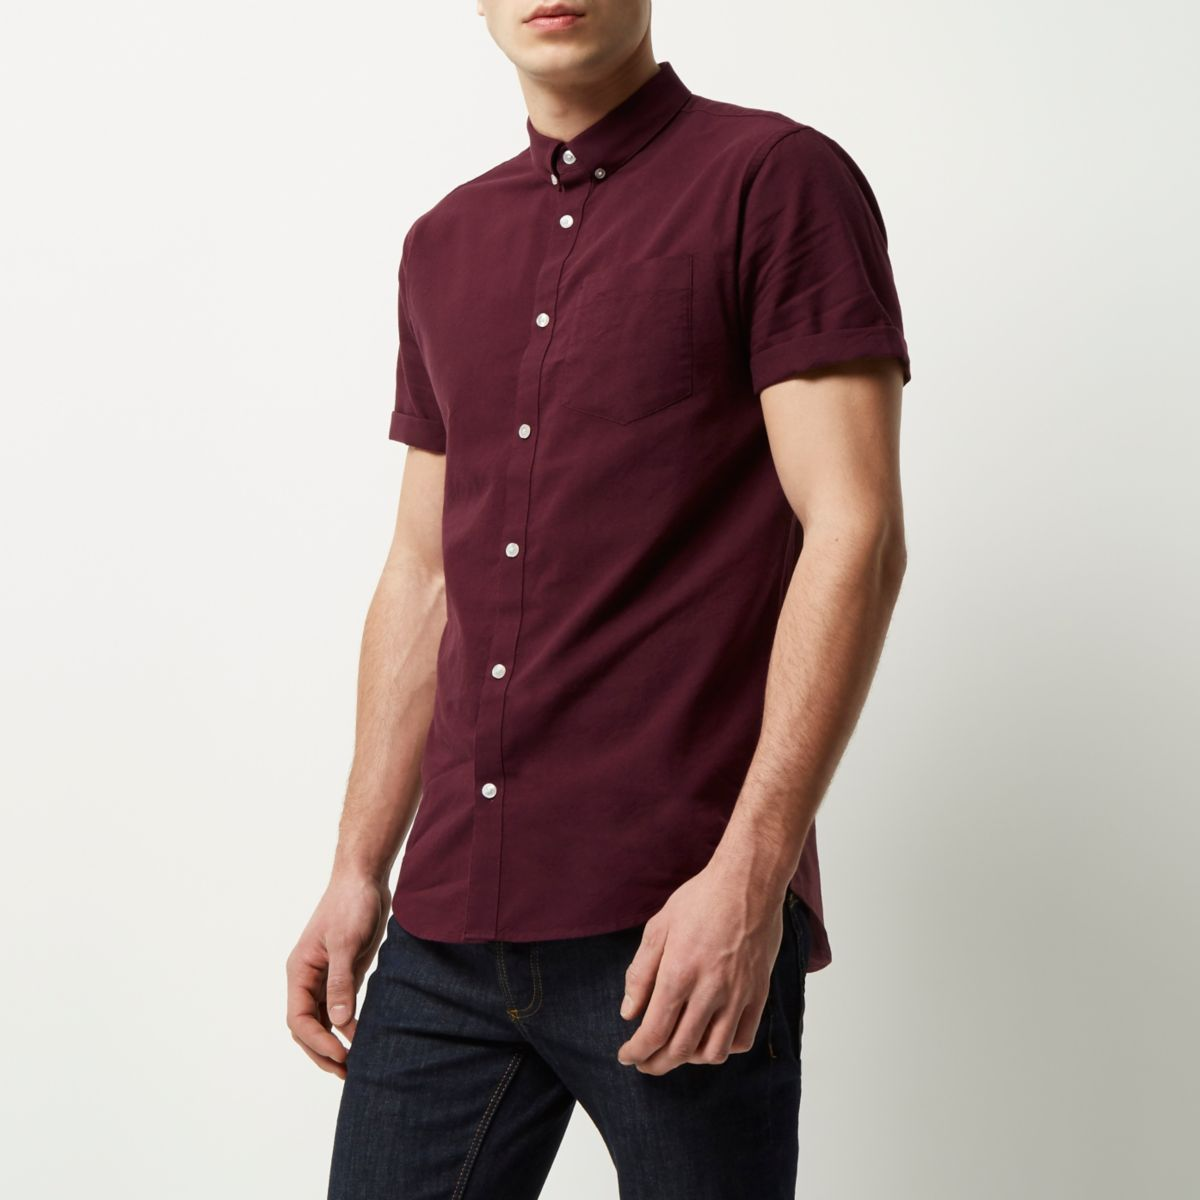 Burgundy short sleeve Oxford shirt